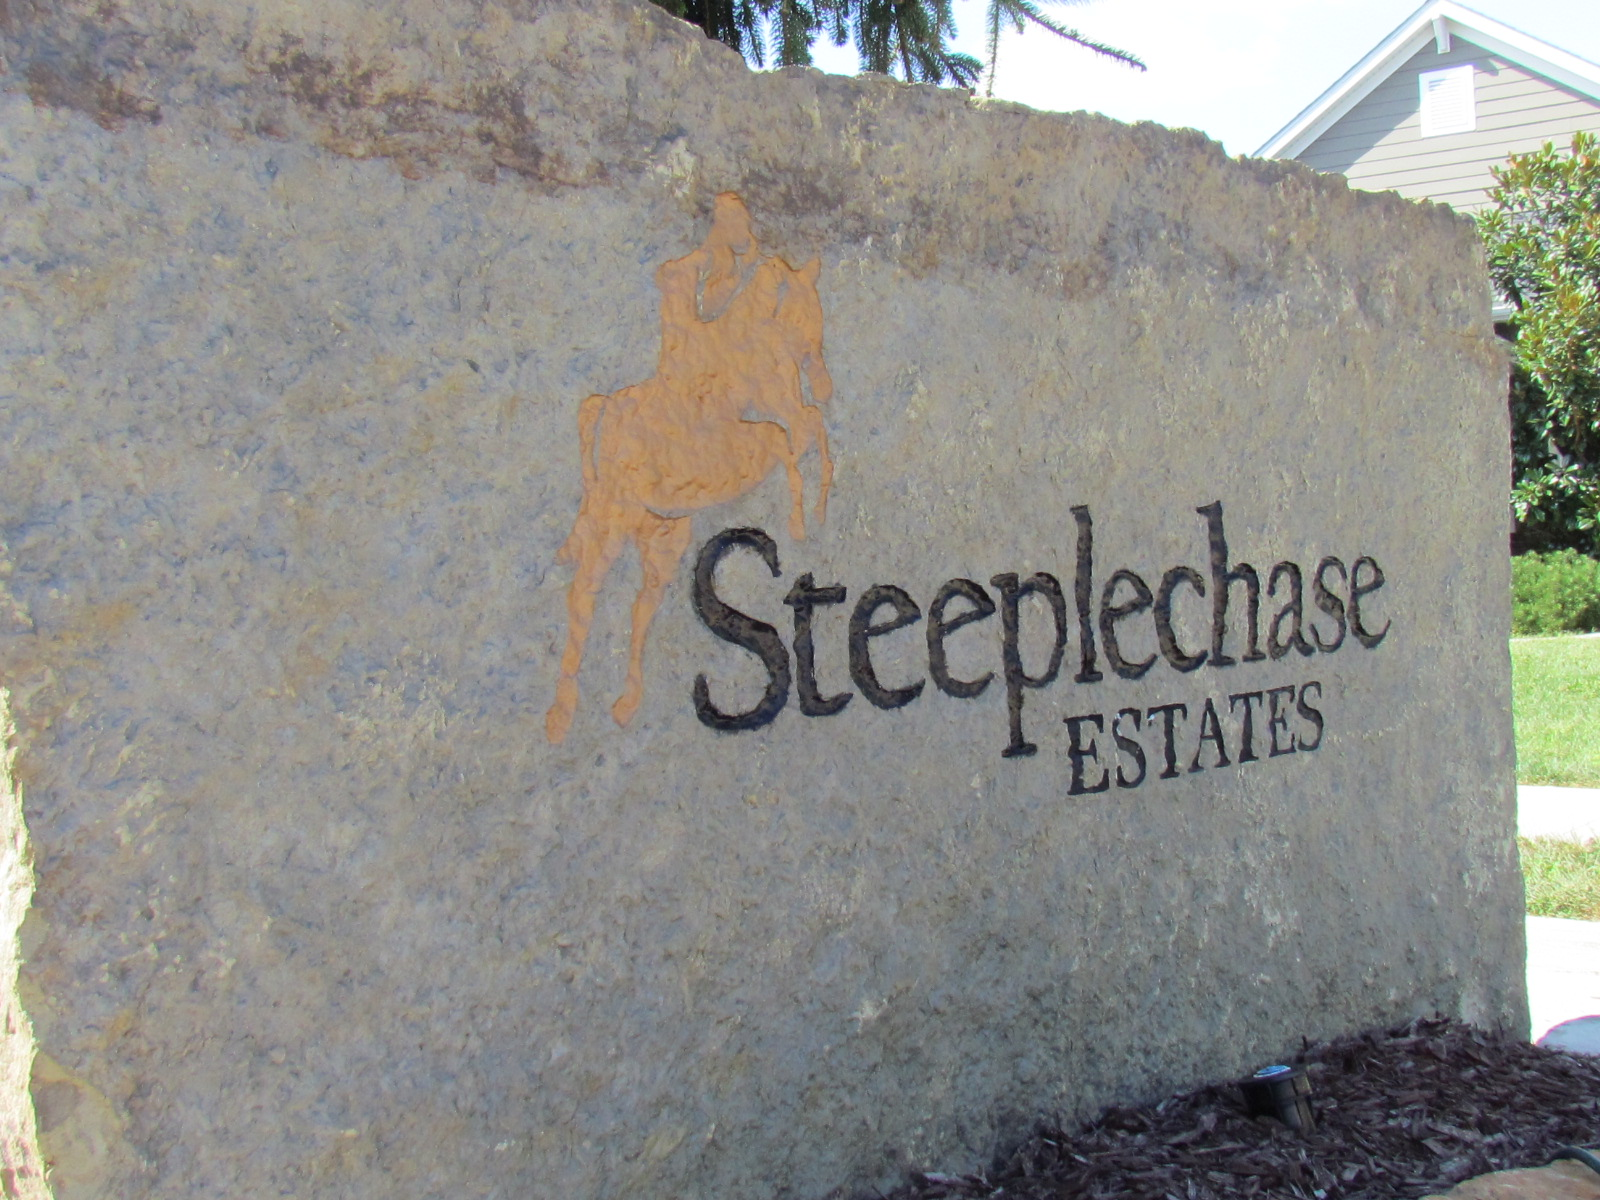 steeplechase-estates-new-home-community-columbia-mo-girard-homes